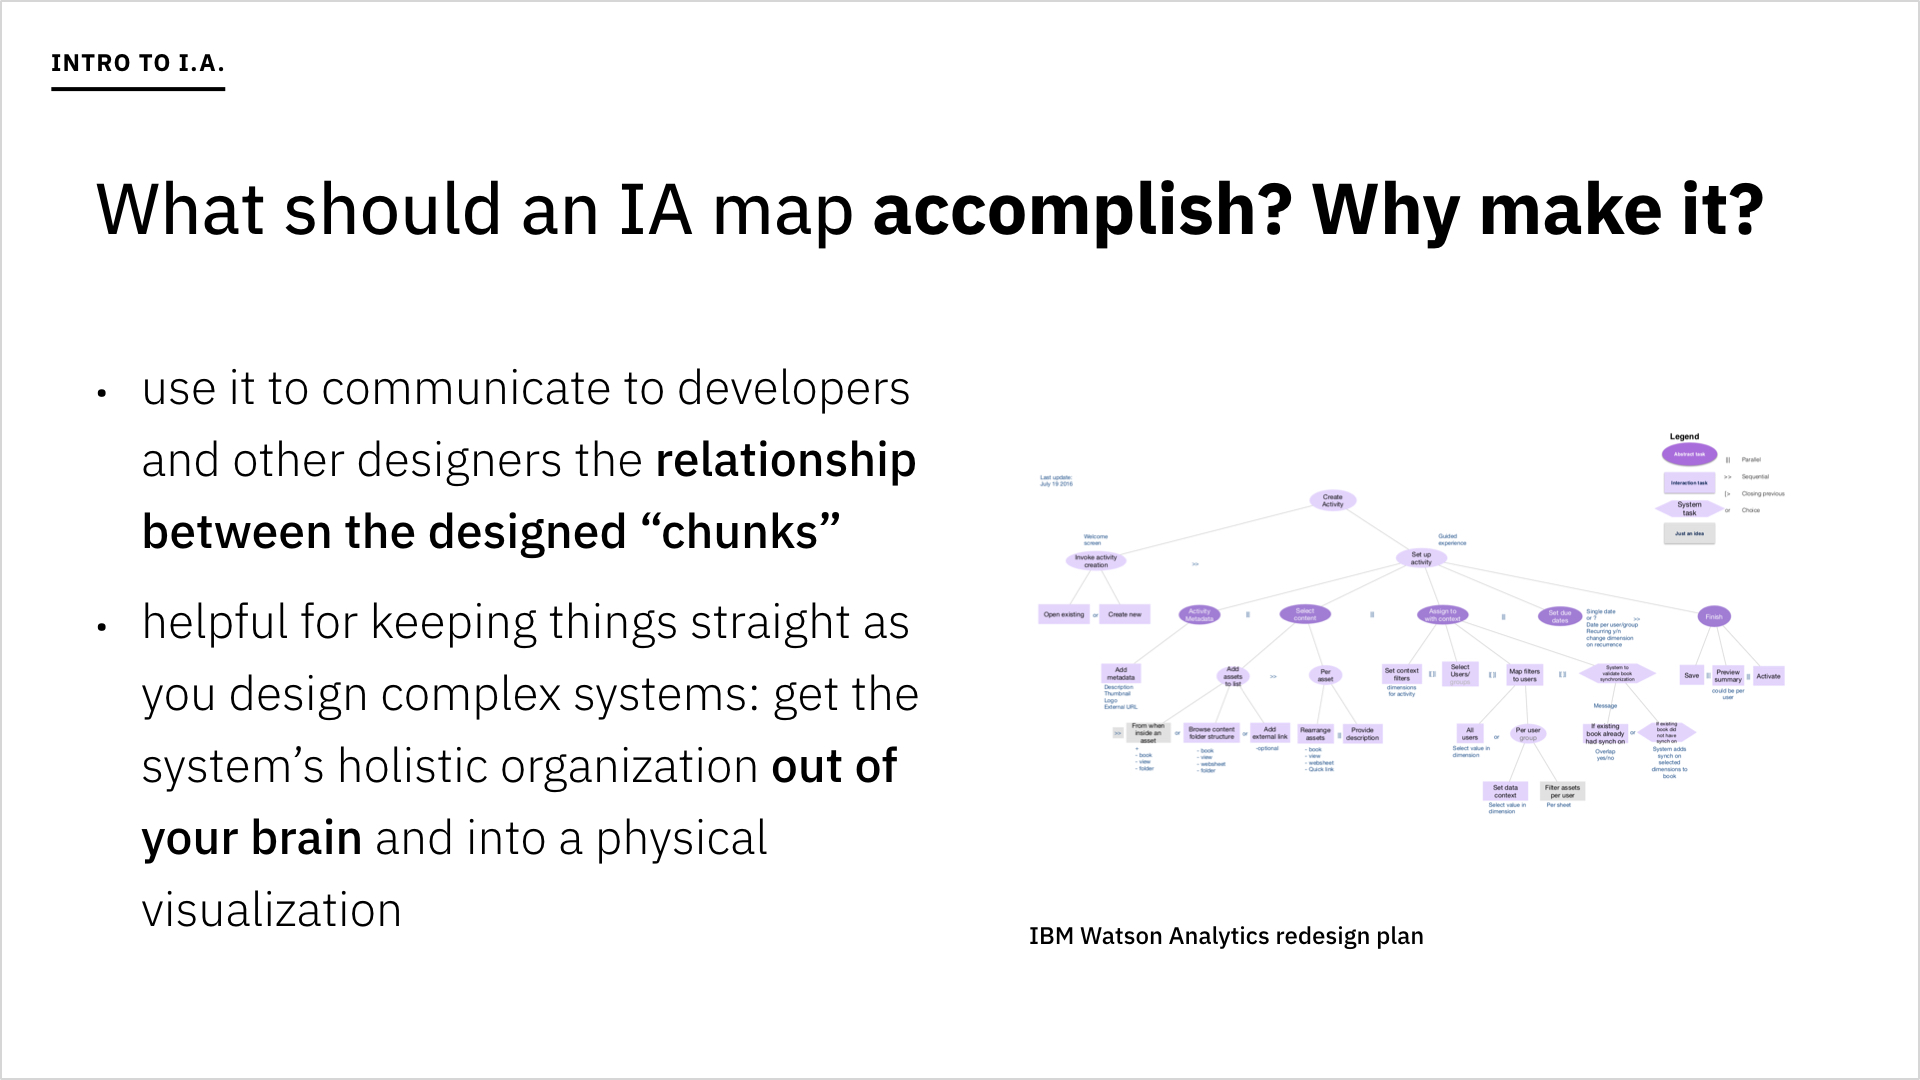 A slide asking what an IA map should accomplish.